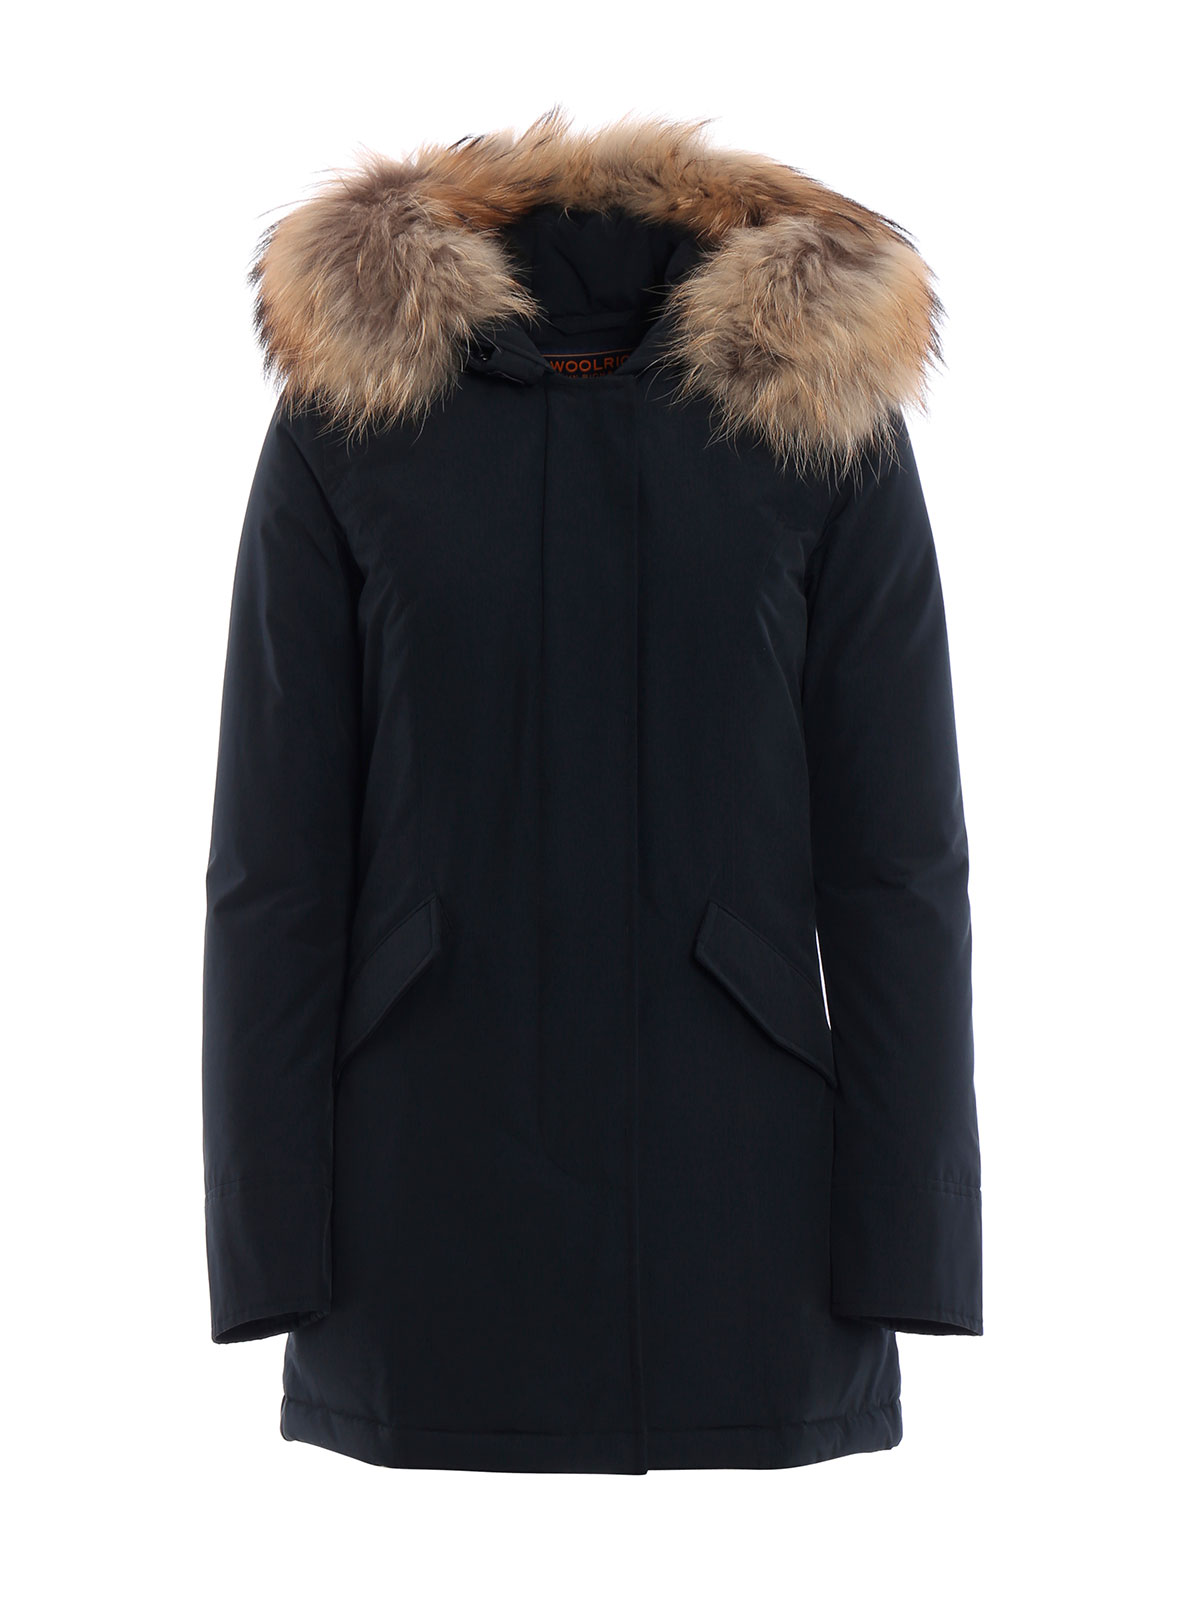 Picture of WOOLRICH | Giacche ARTIC PARKA